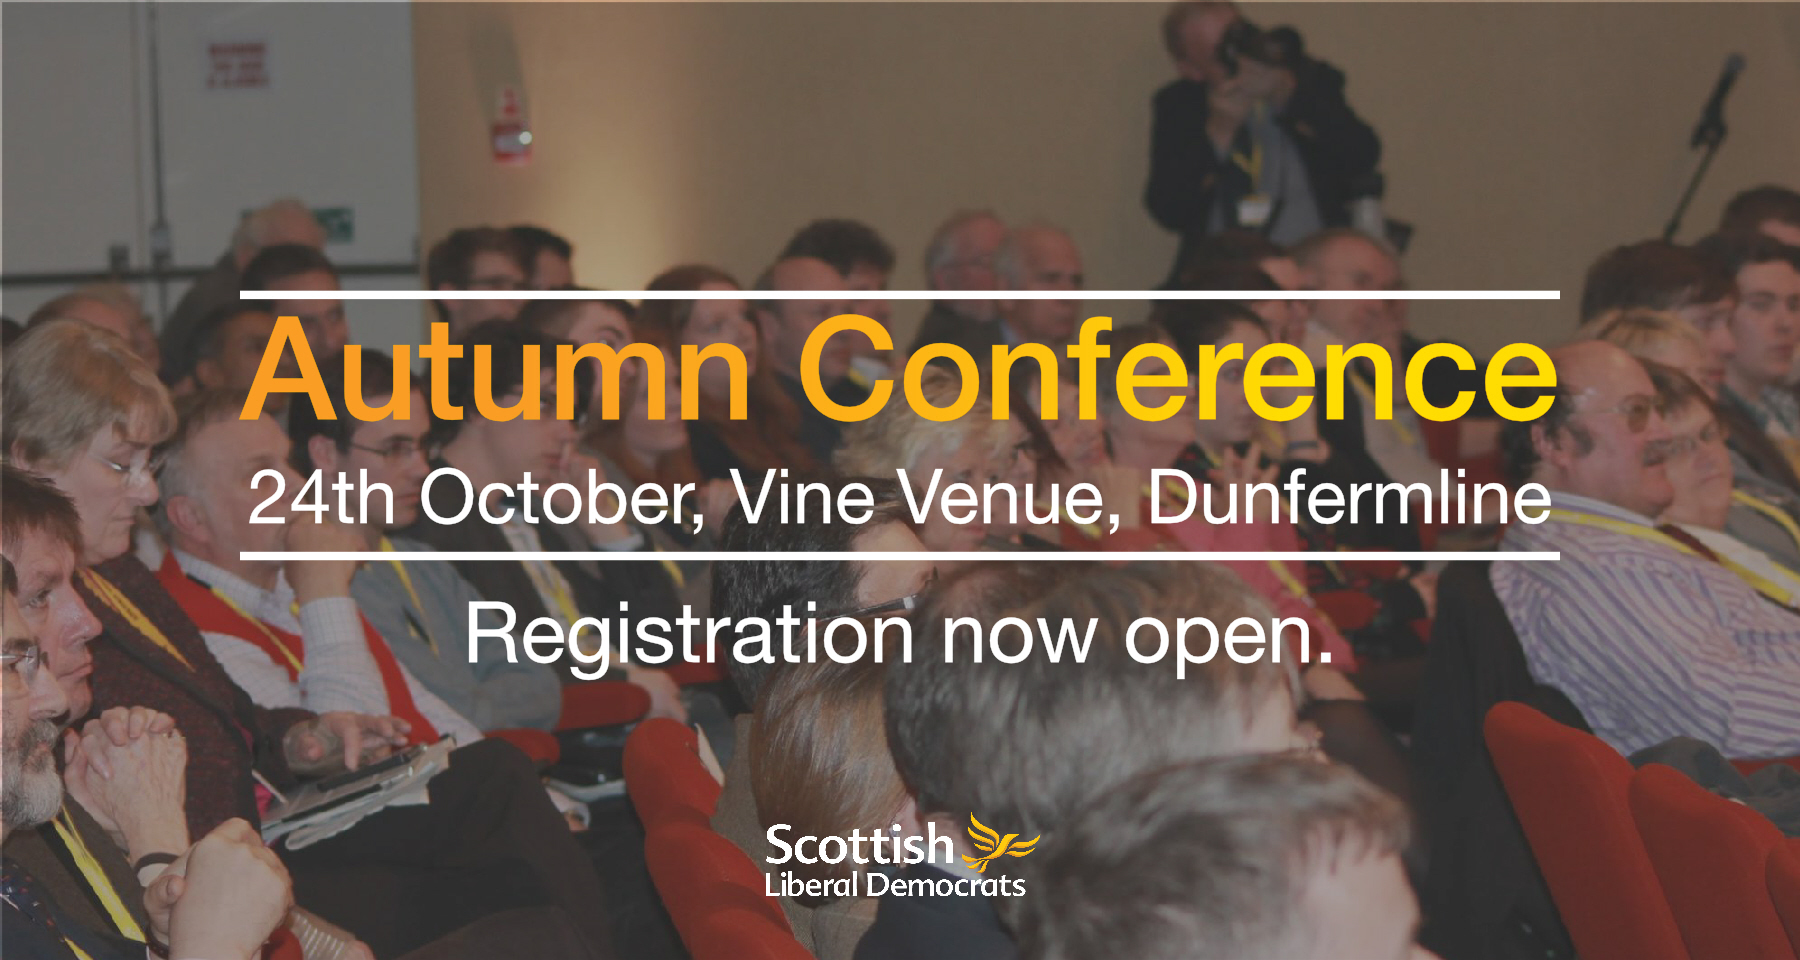 Autumn Conference 2015